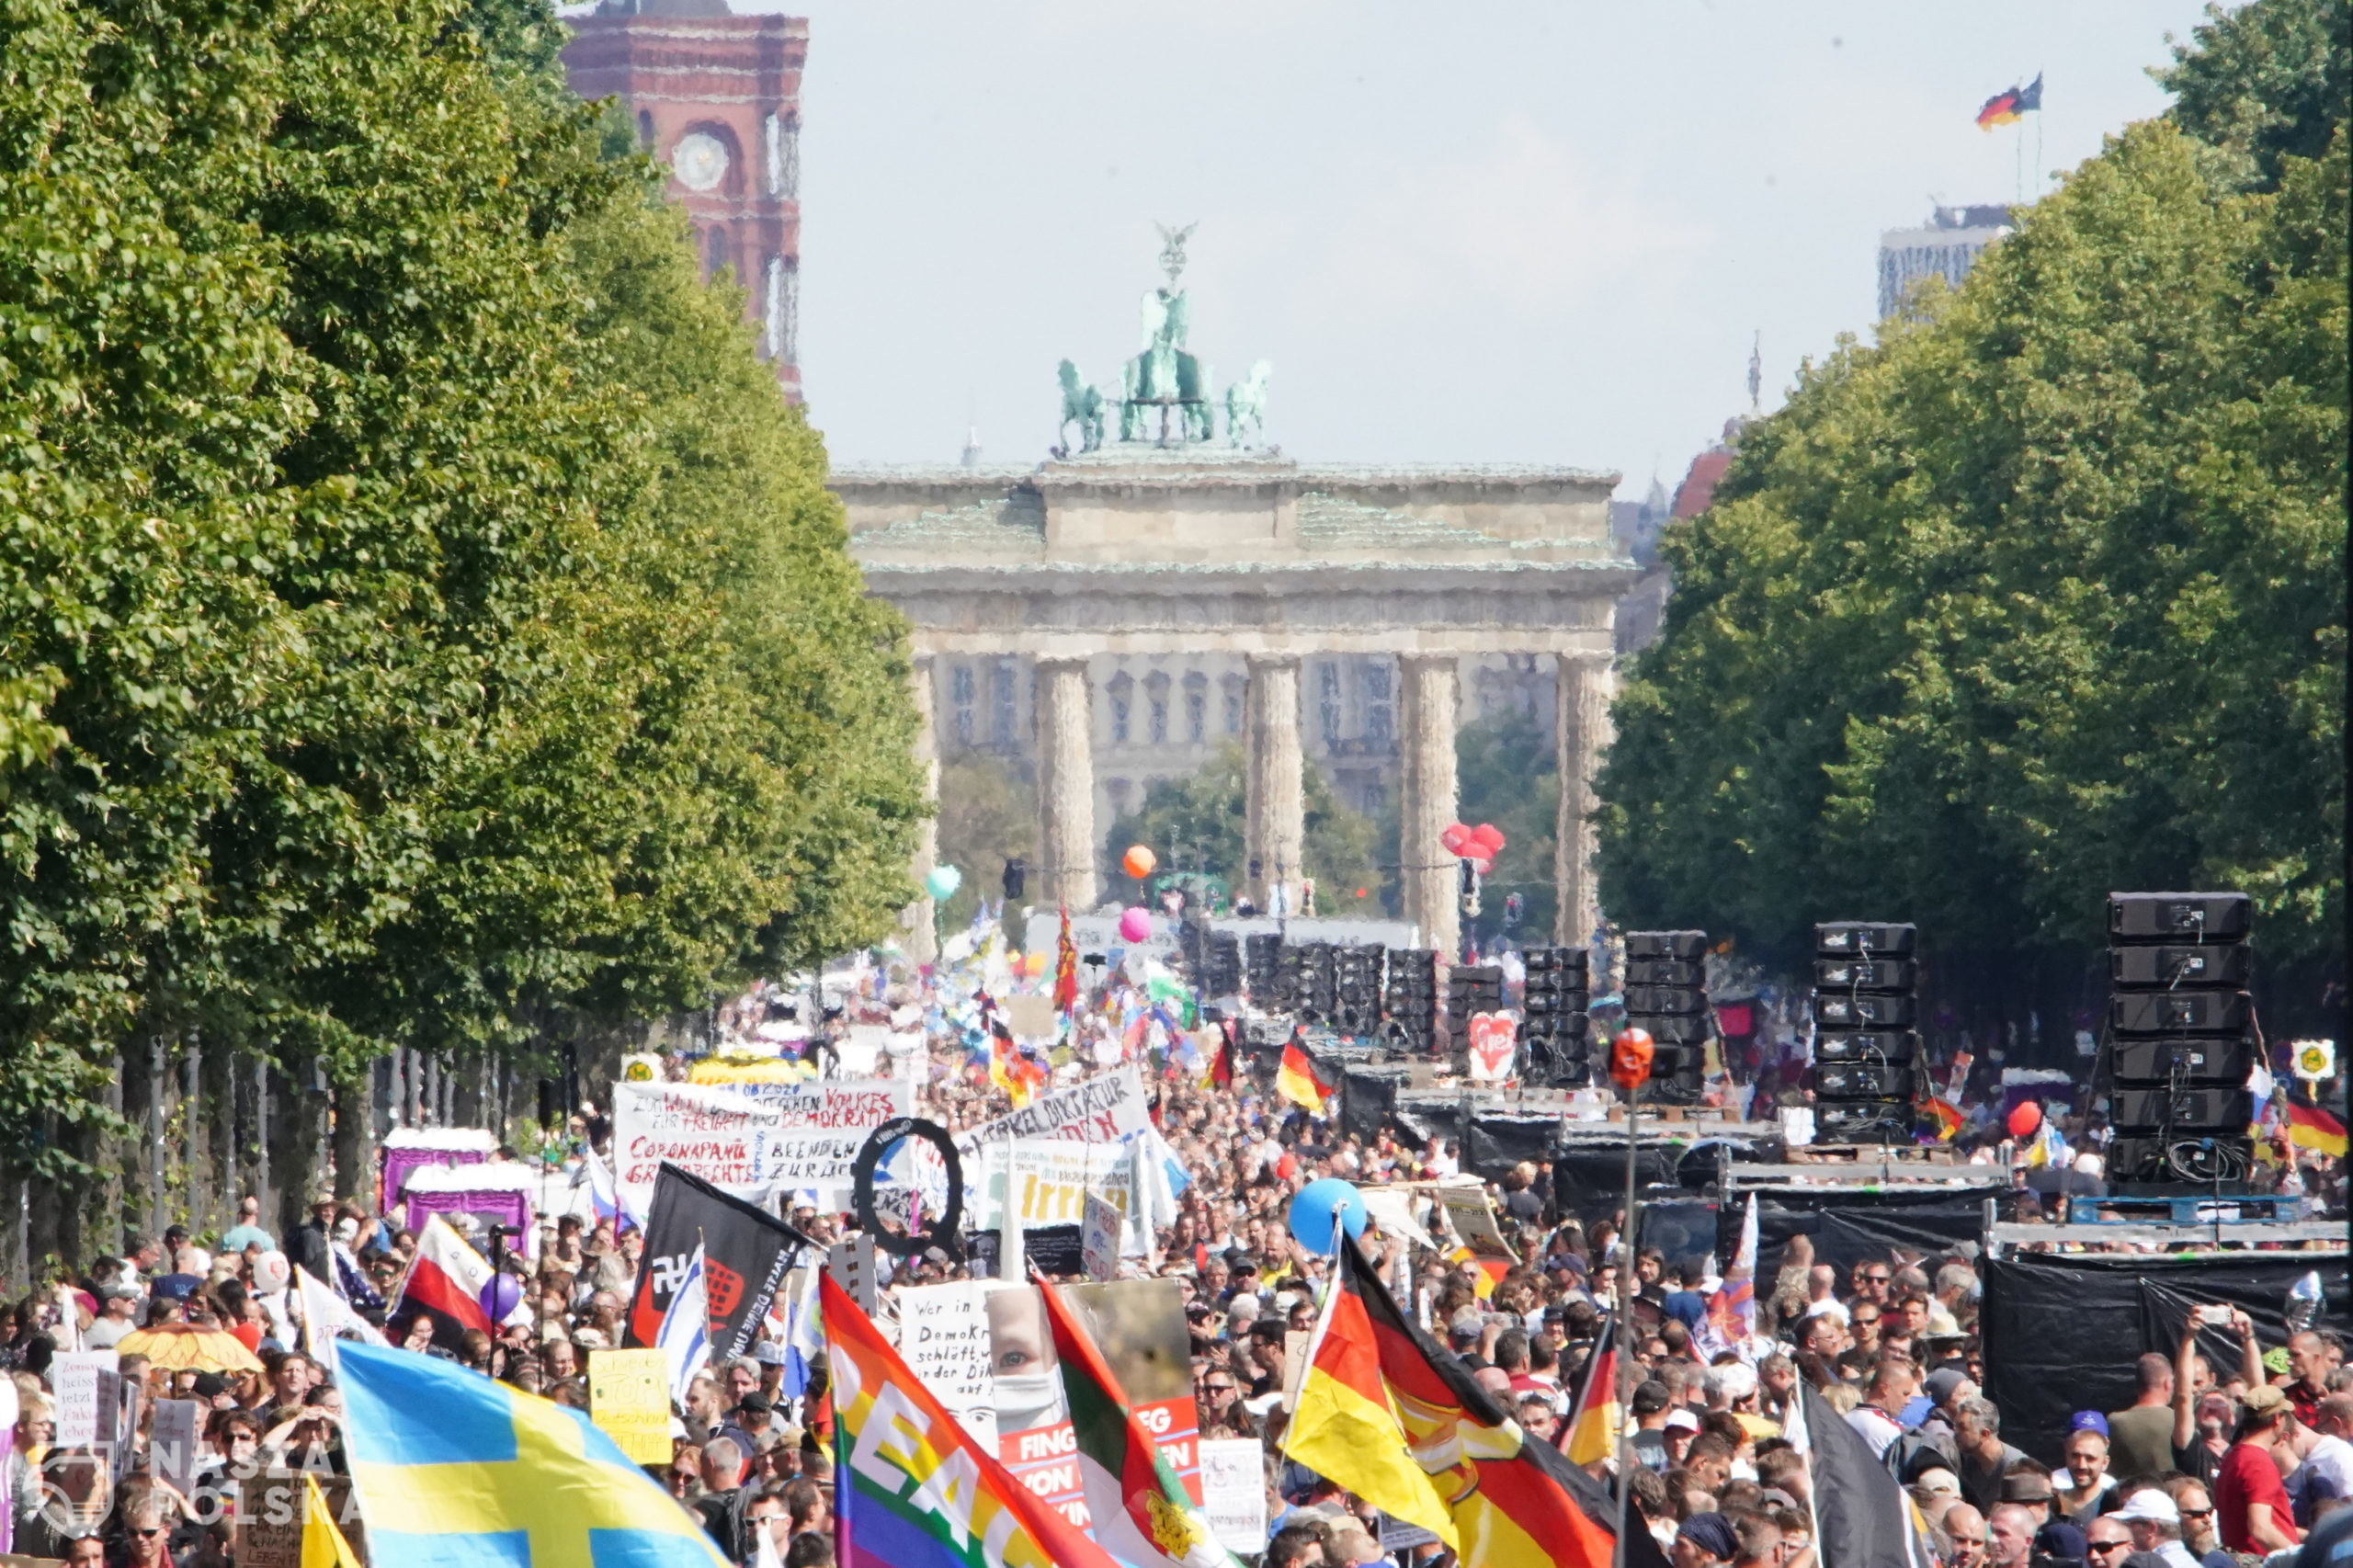 epa08633889 A general view of demonstrators during a protest against coronavirus pandemic regulations in front of Brandenburg Gate in Berlin, Germany, 29 August 2020. The initiative 'Querdenken 711' and an alliance of right wing groups have called to demonstrate against coronavirus regulations like face mask wearing, in Berlin. Meanwhile forbidden, Berlin administrative court and higher administrative court allowed the demonstration to take place under certain requirements. Police announced to stop the demonstration when conditions were not met.  EPA/CLEMENS BILAN  Dostawca: PAP/EPA.